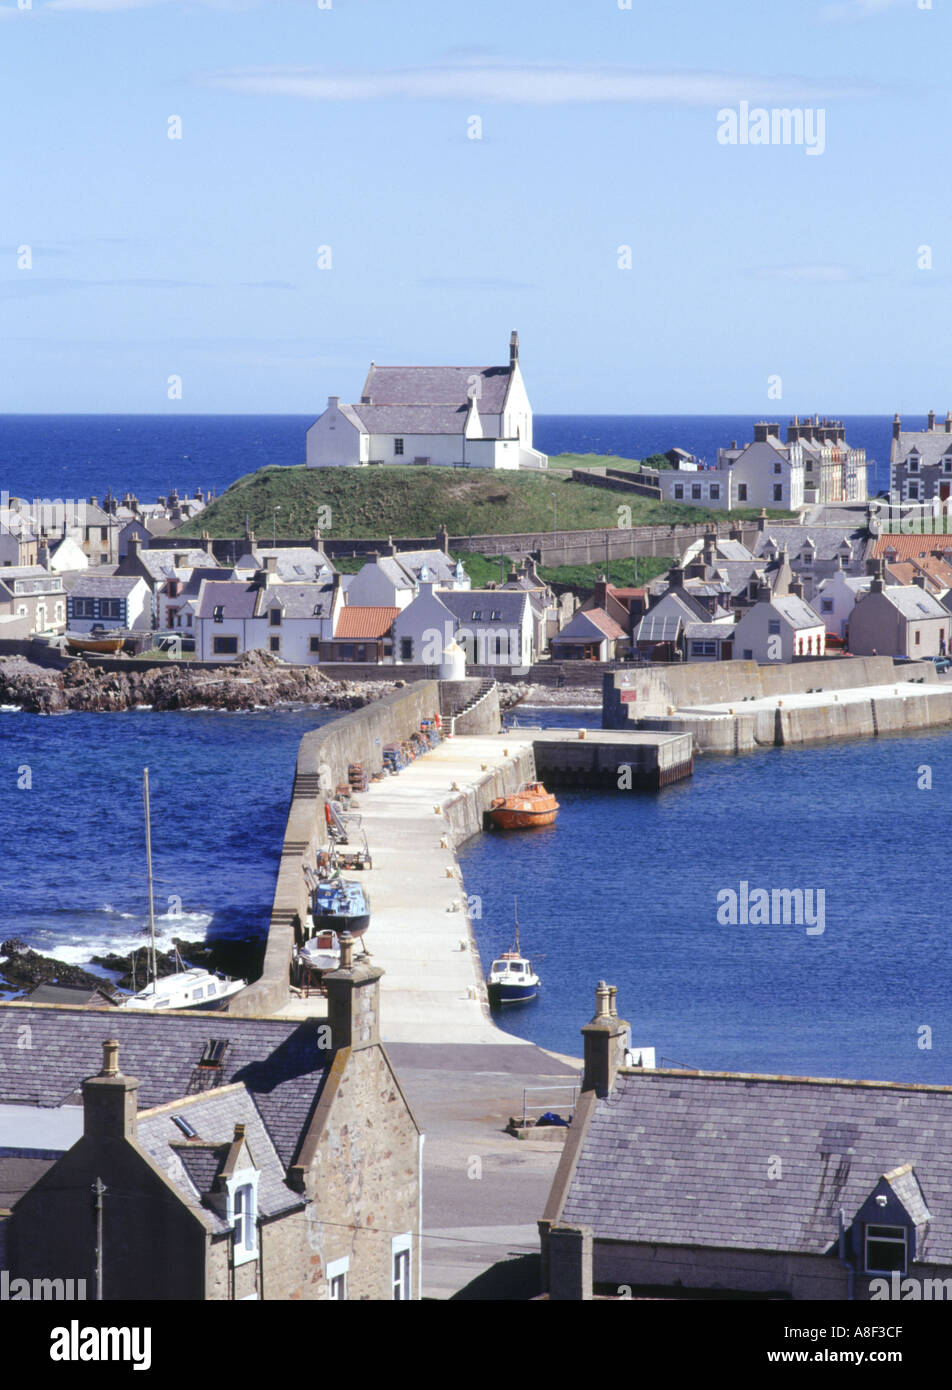 dh Fishing village Harbour FINDOCHTY MORAY Church on hill scotland Stock Photo